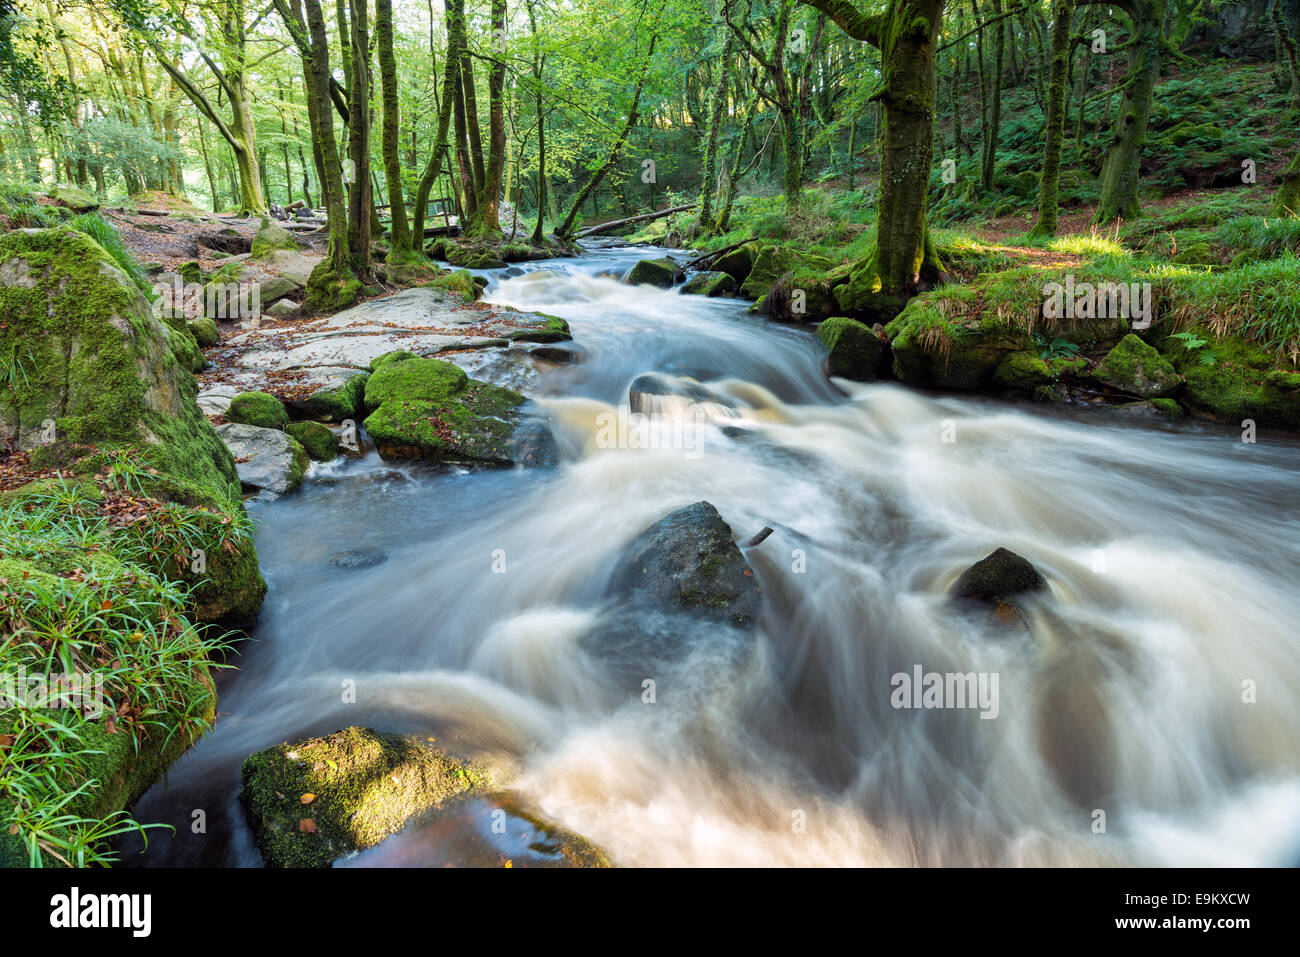 Golitha Falls a magical forest cascade on the southern edge of Bodmin Moor in Cornwall - Stock Image